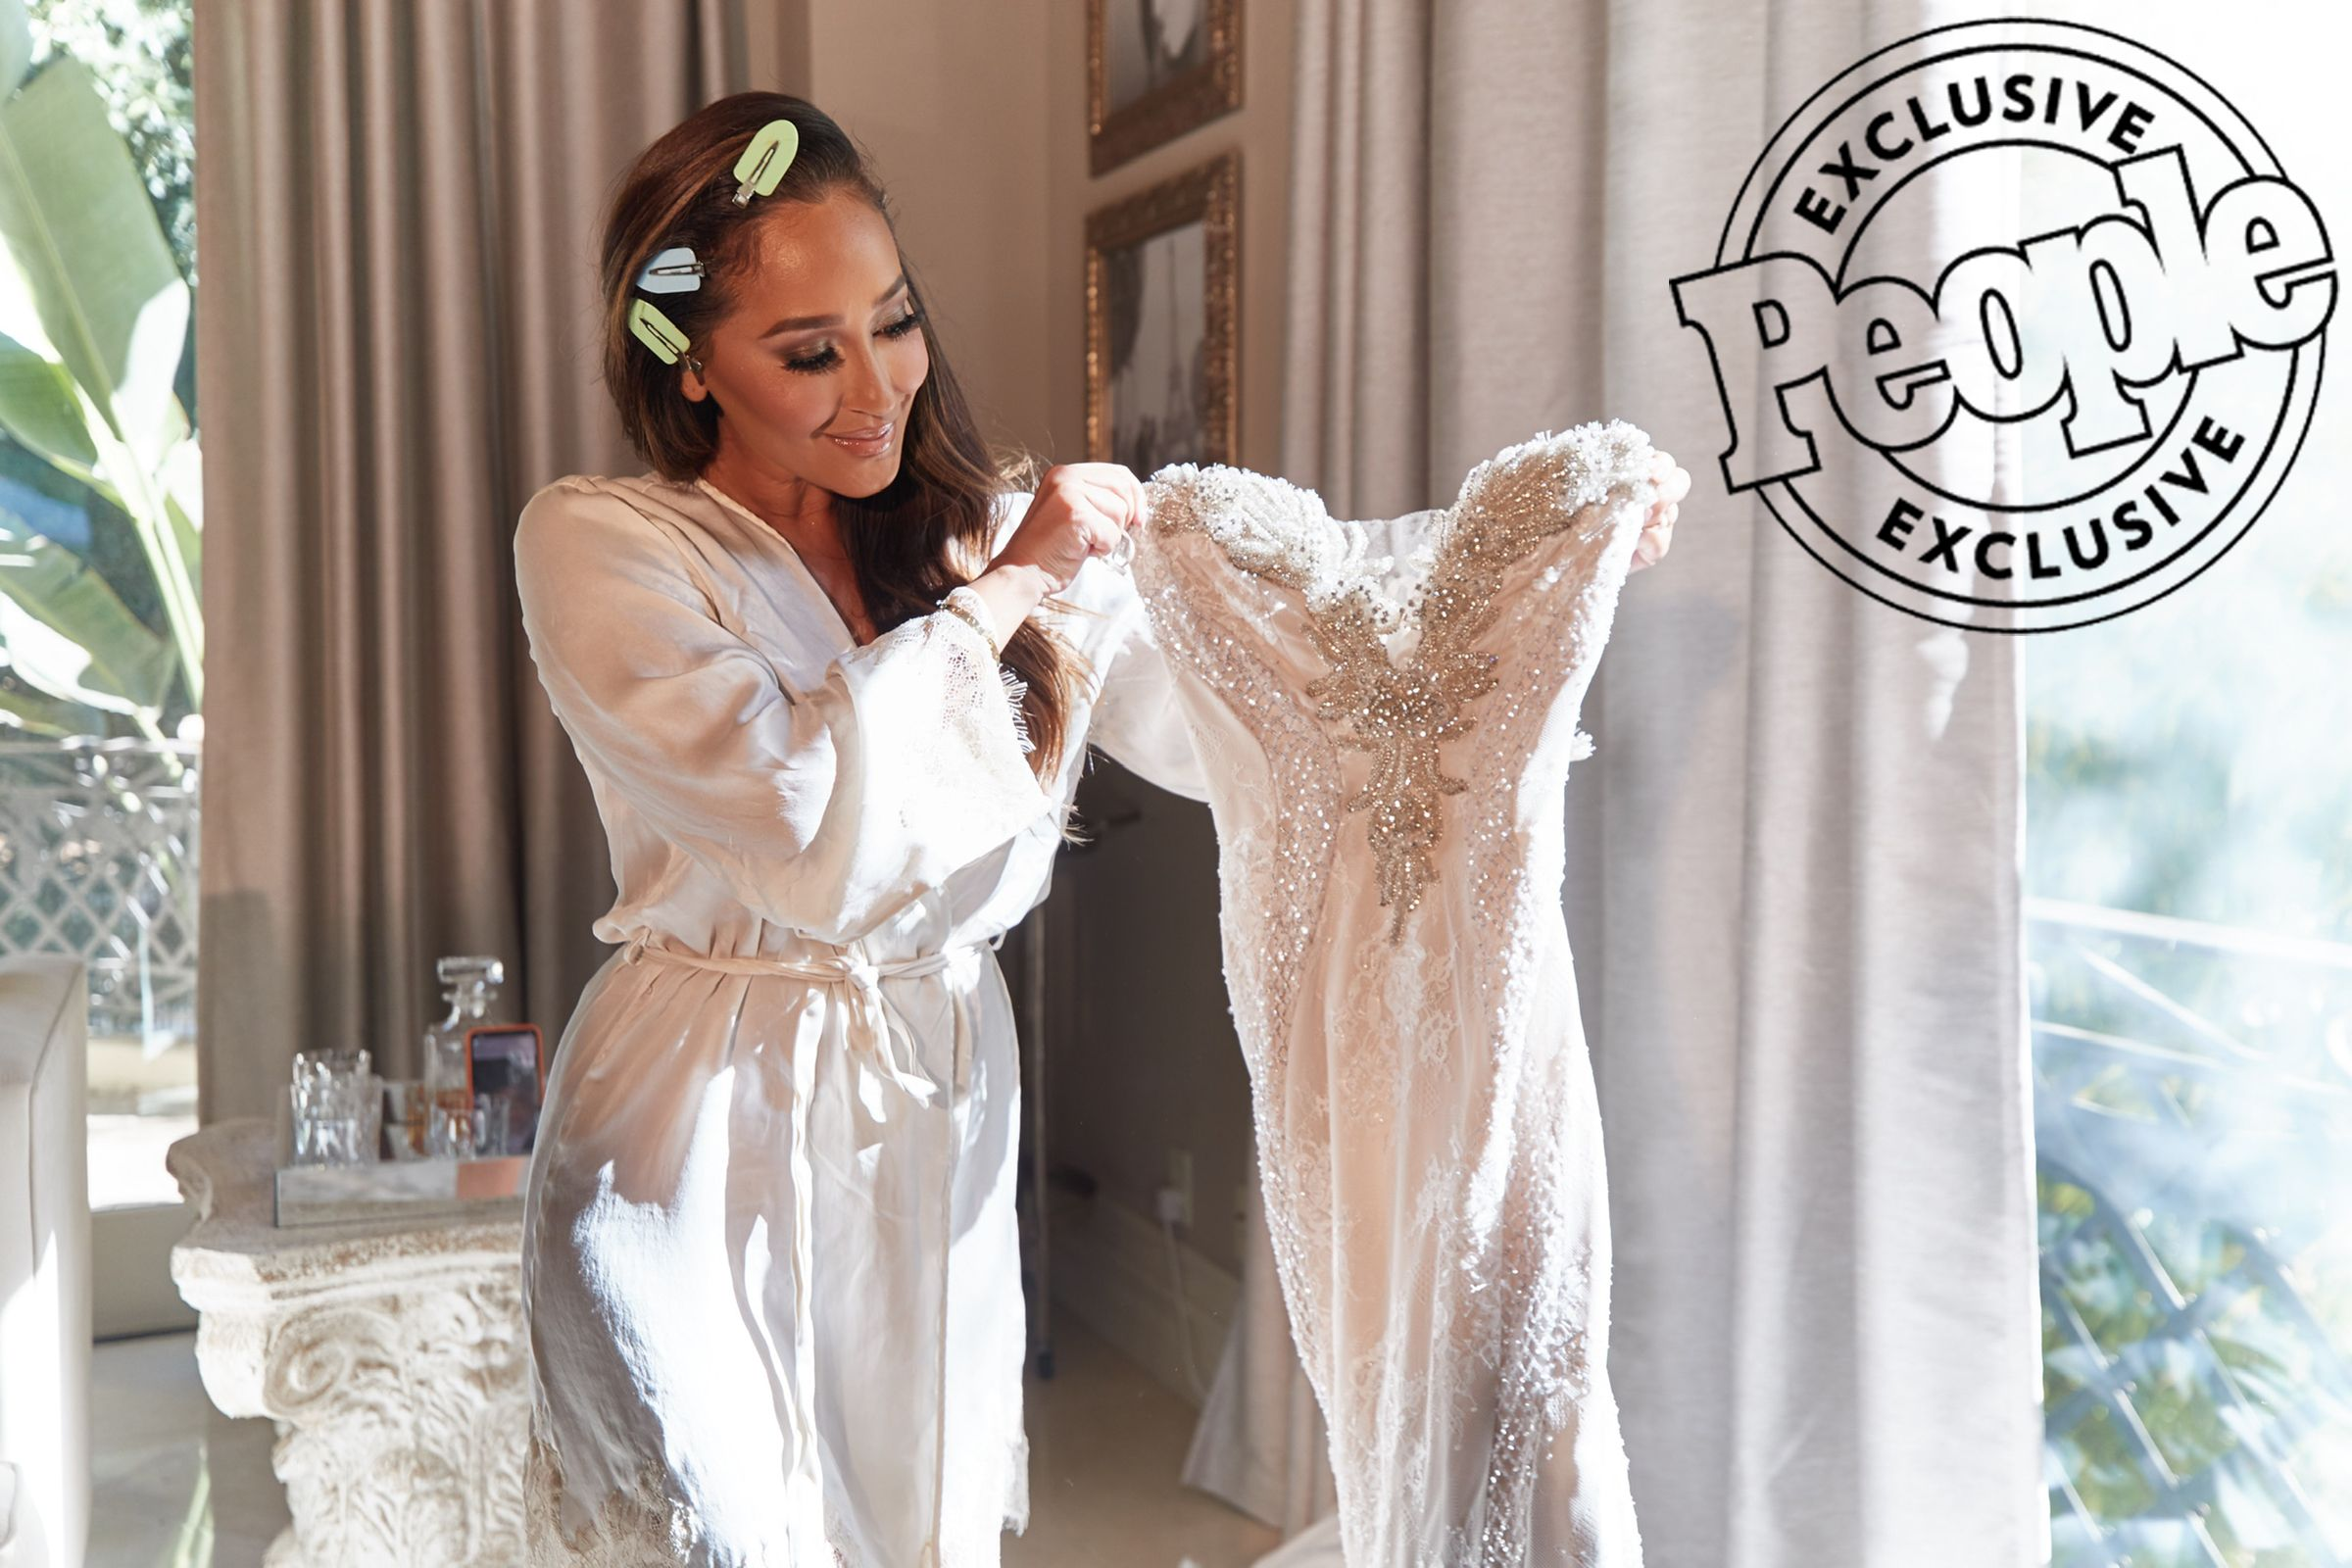 Photo of Adrienne Bailon Houghton Rewears Unaltered Wedding Dress 3 Years Later: 'It Fit the Exact Same'